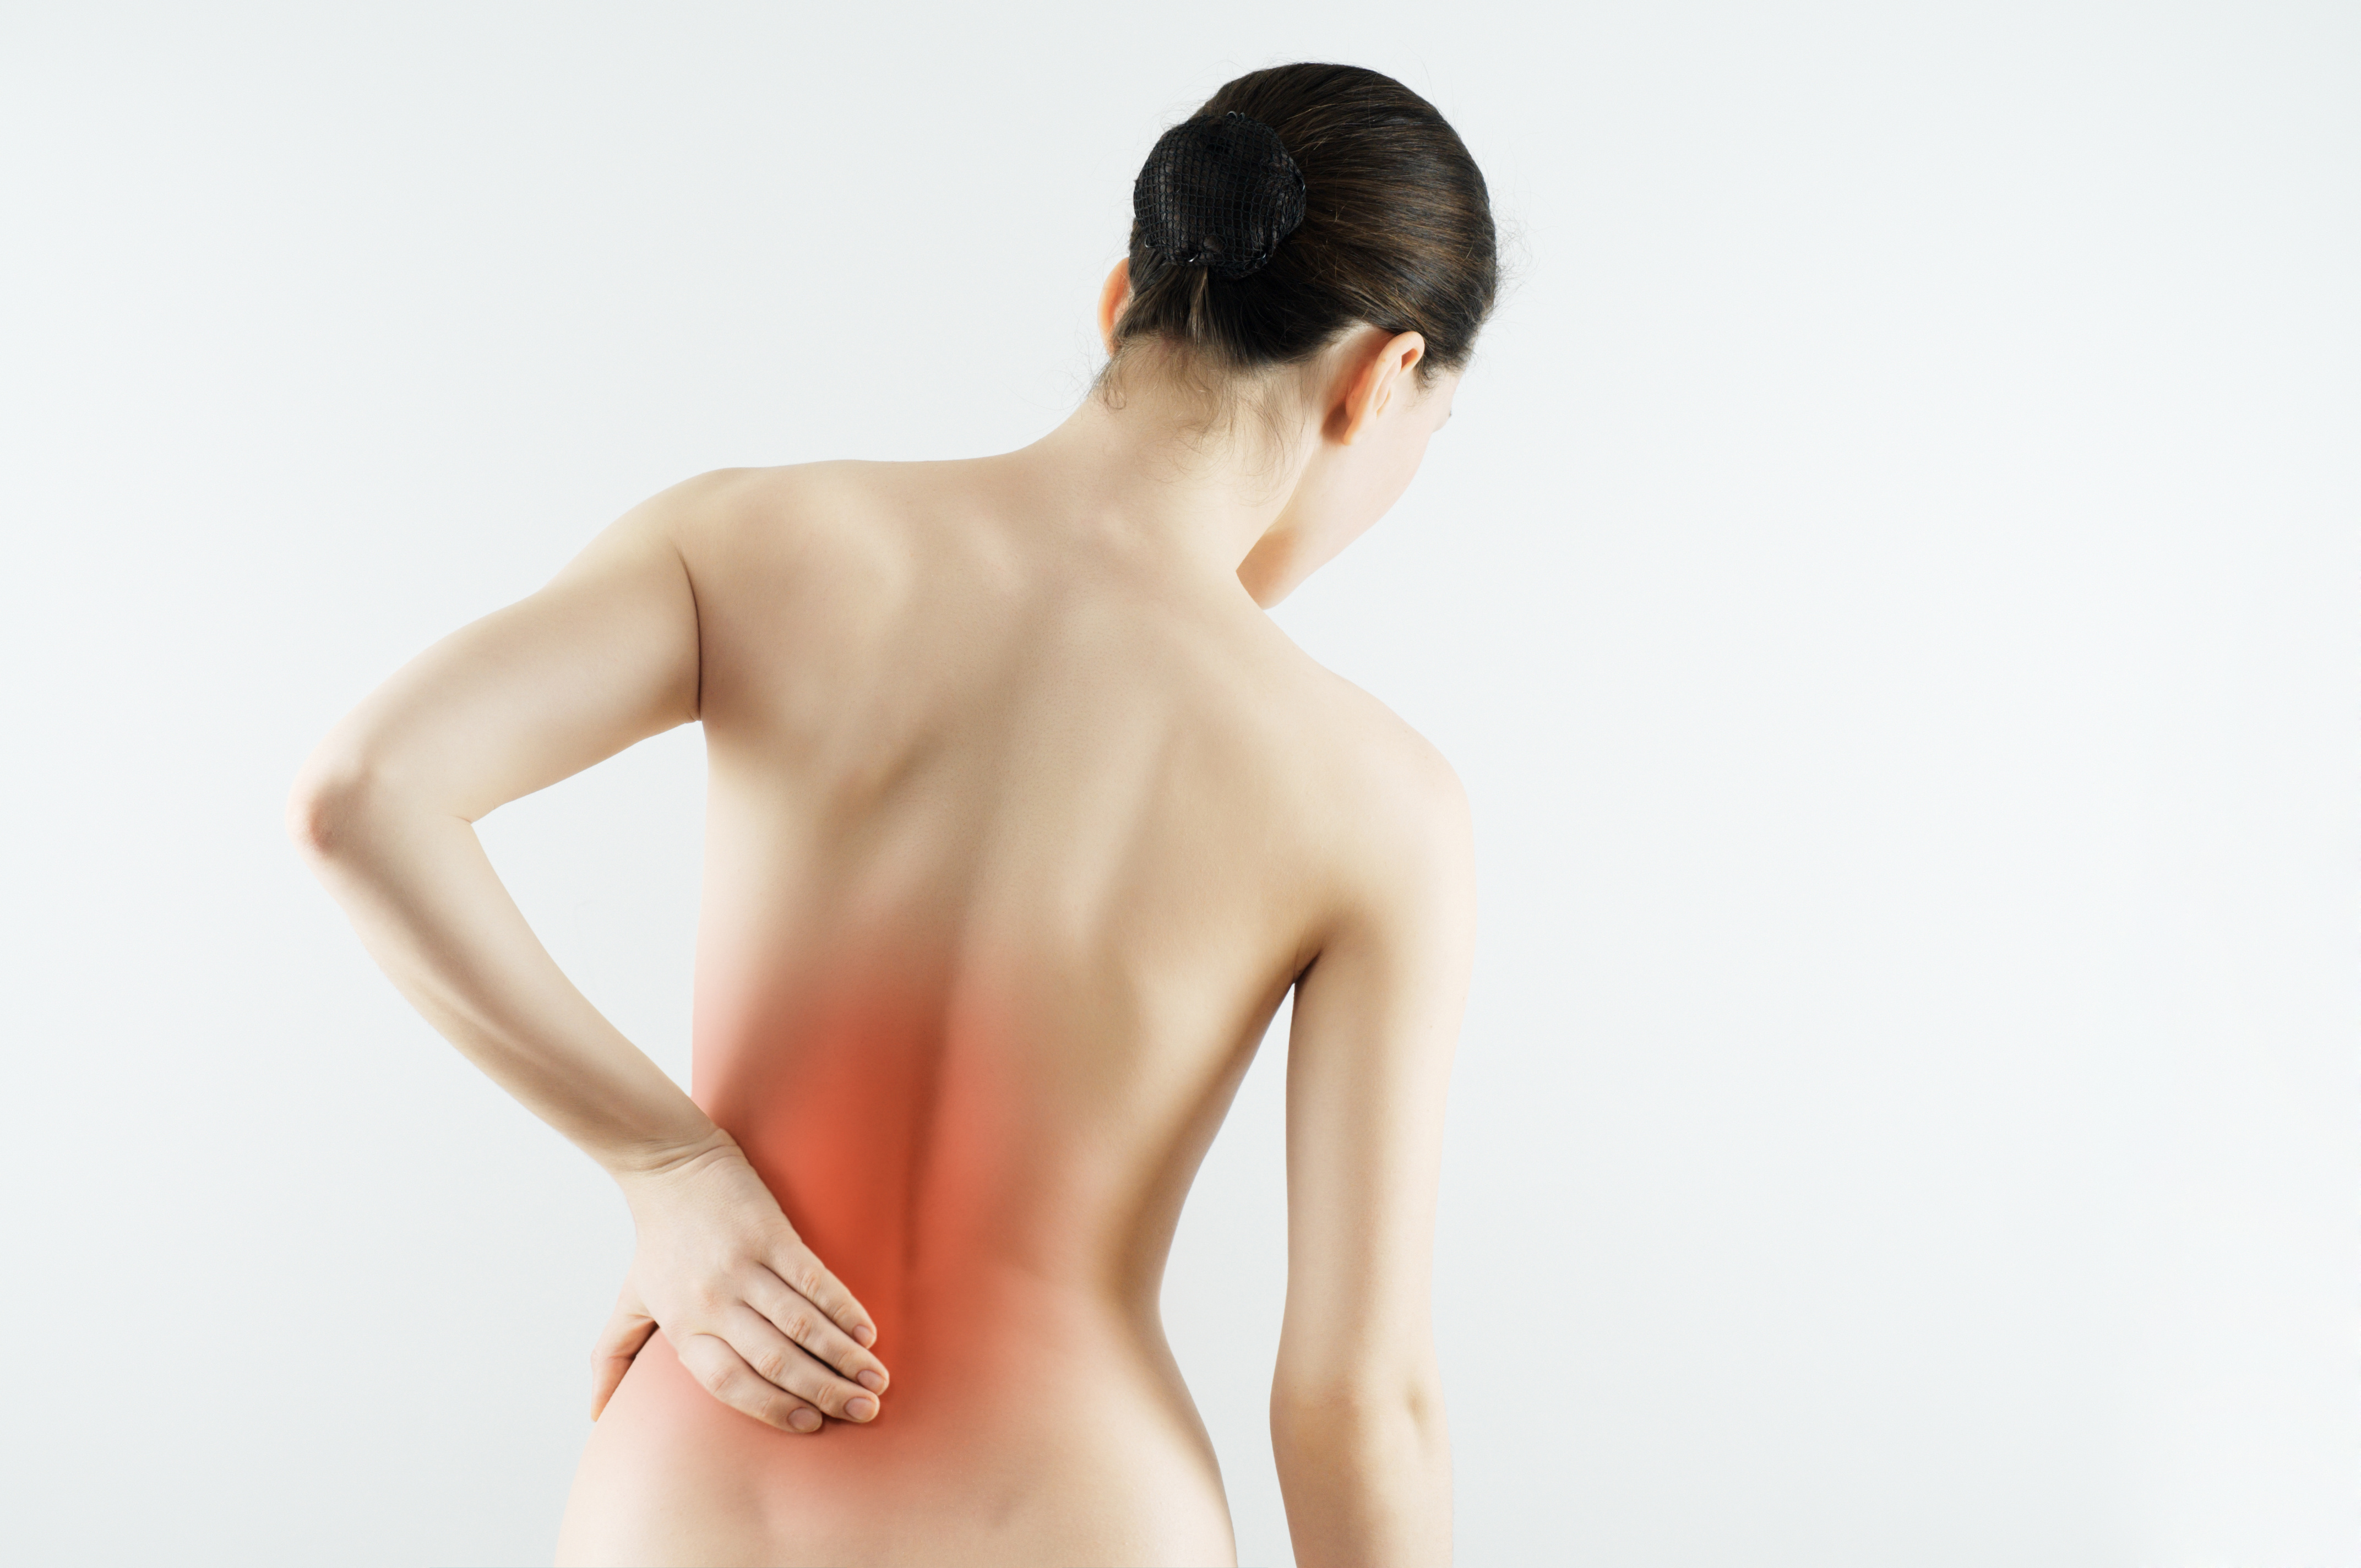 How Can I Help My Back Pain?